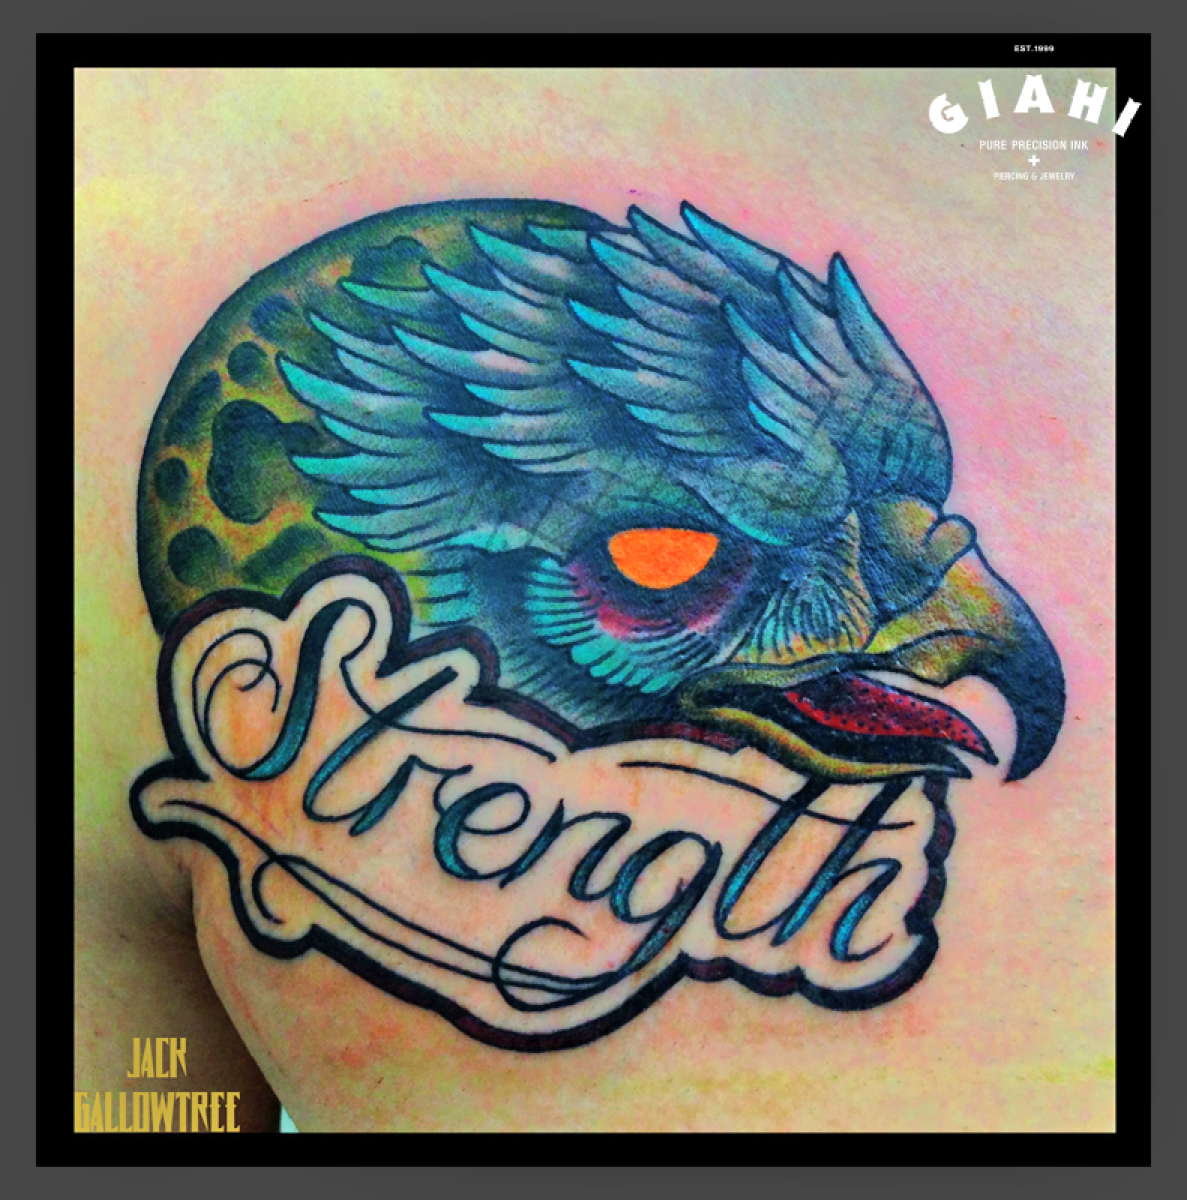 Moon Eagle Strenth Lettering tattoo by Jack Gallowtree